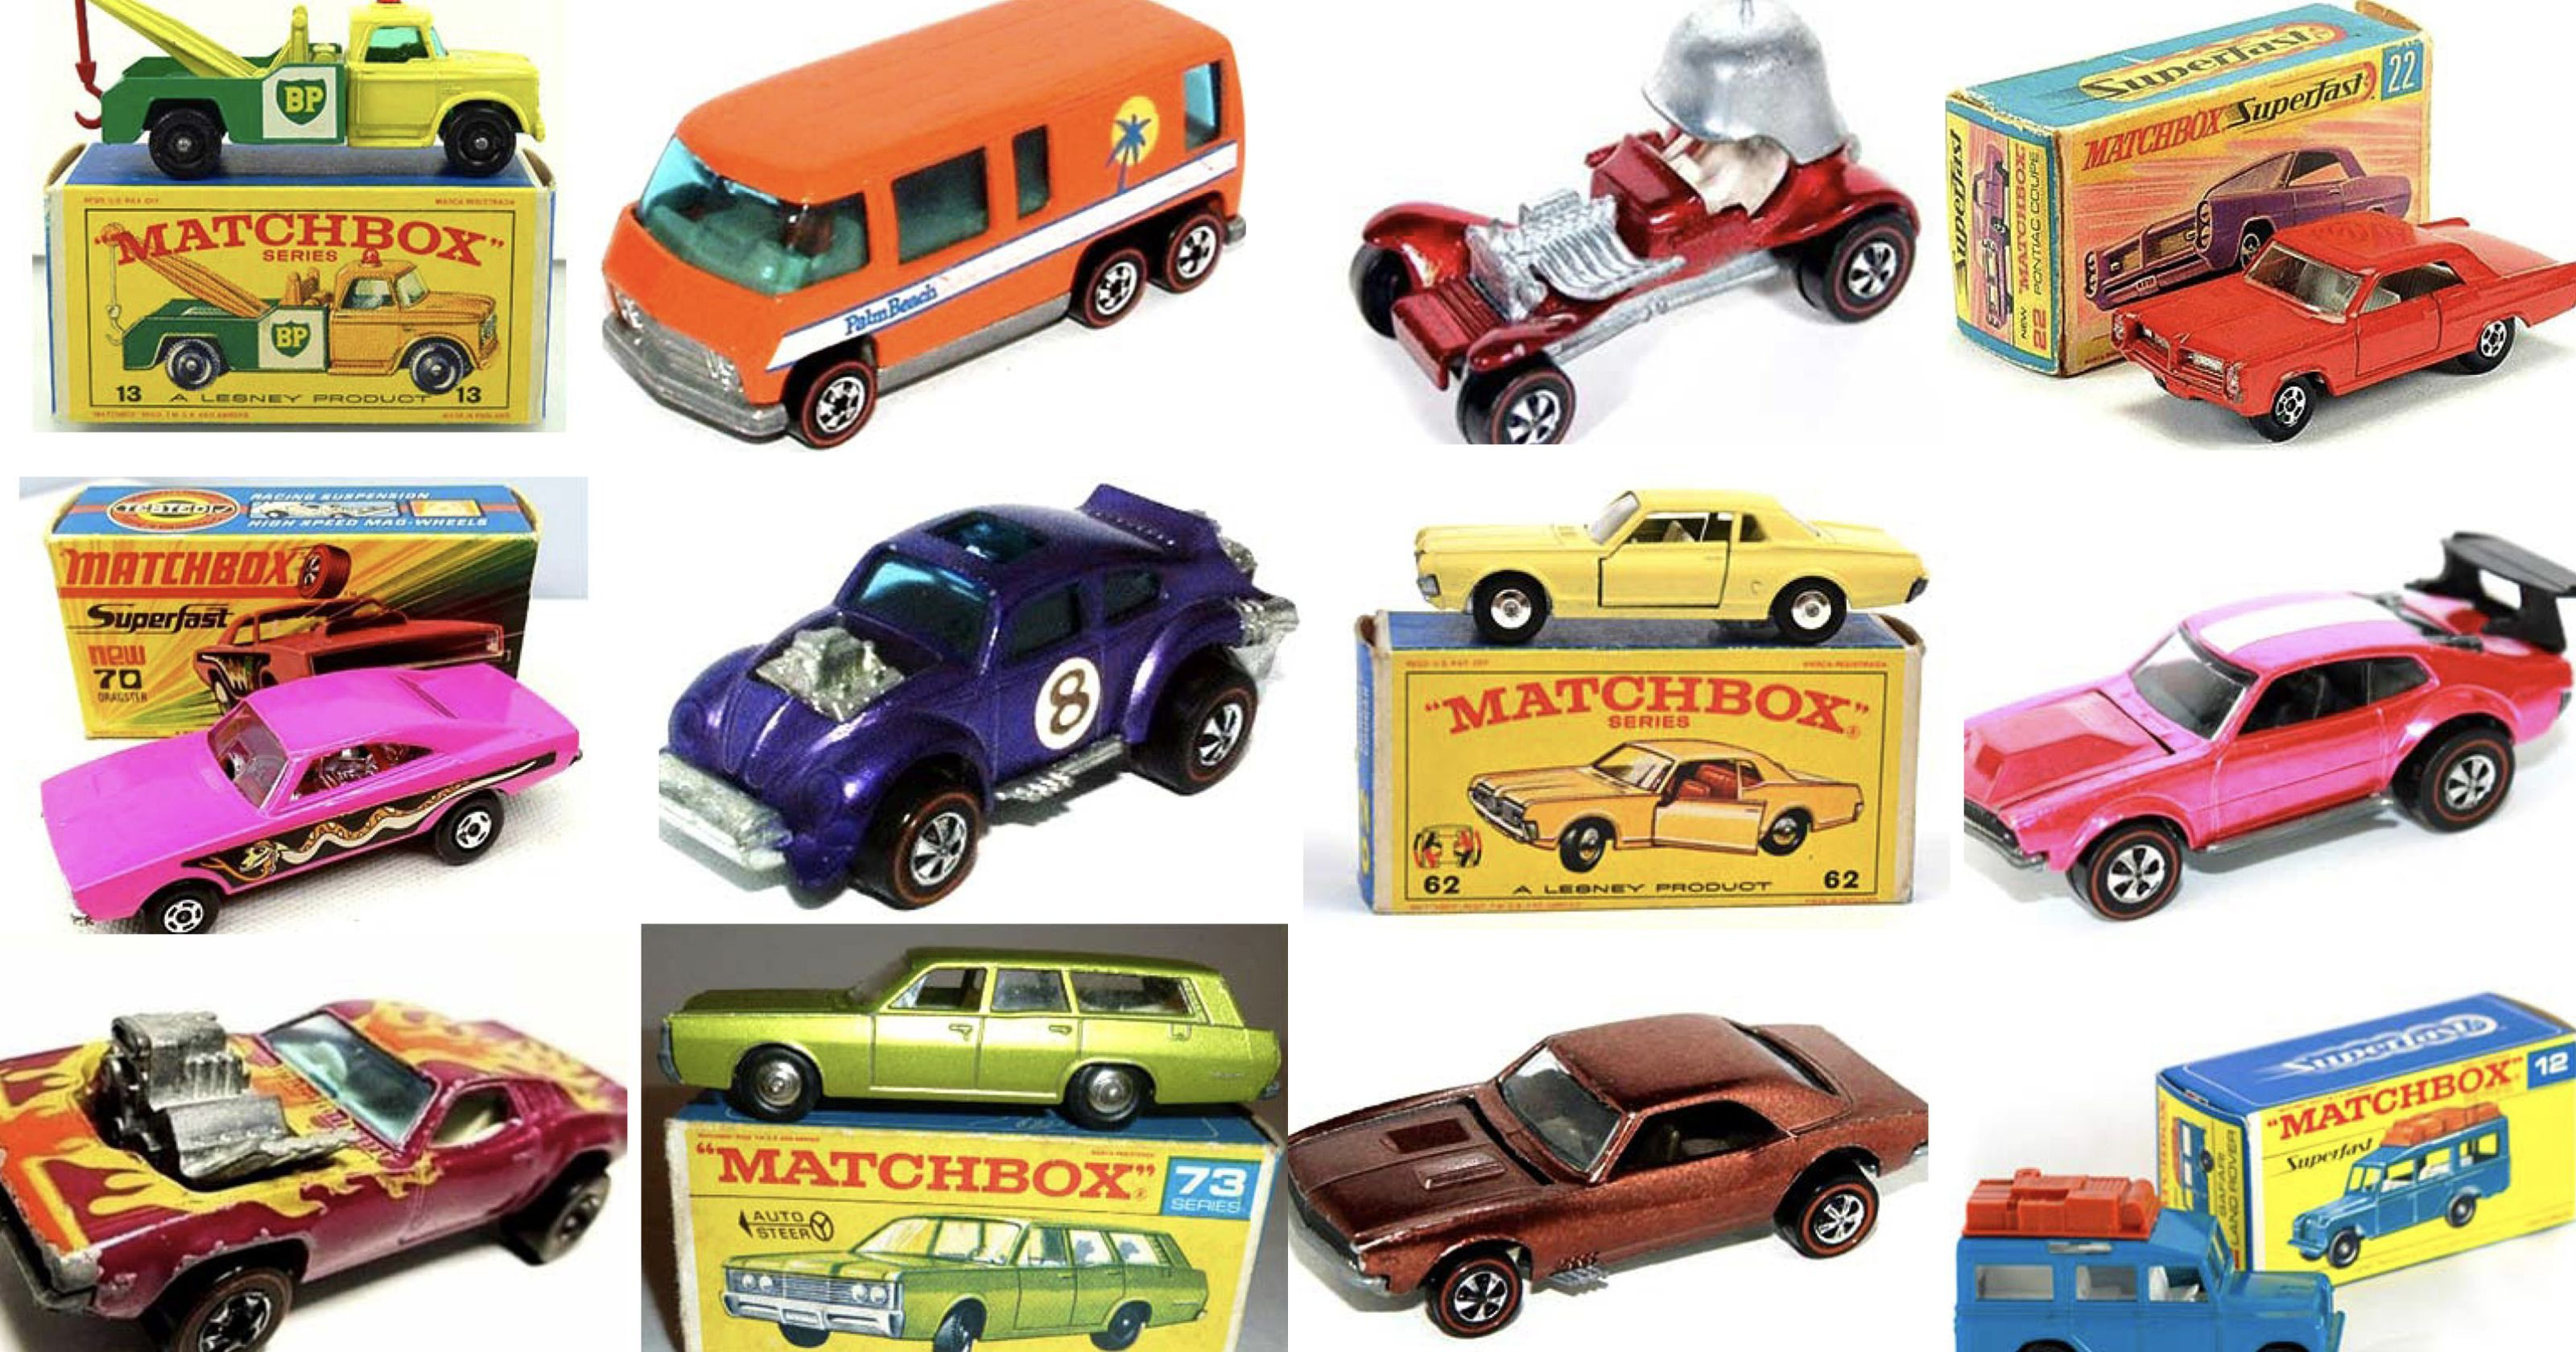 Rare Hot Wheels, Matchbox car: What theyre worth now